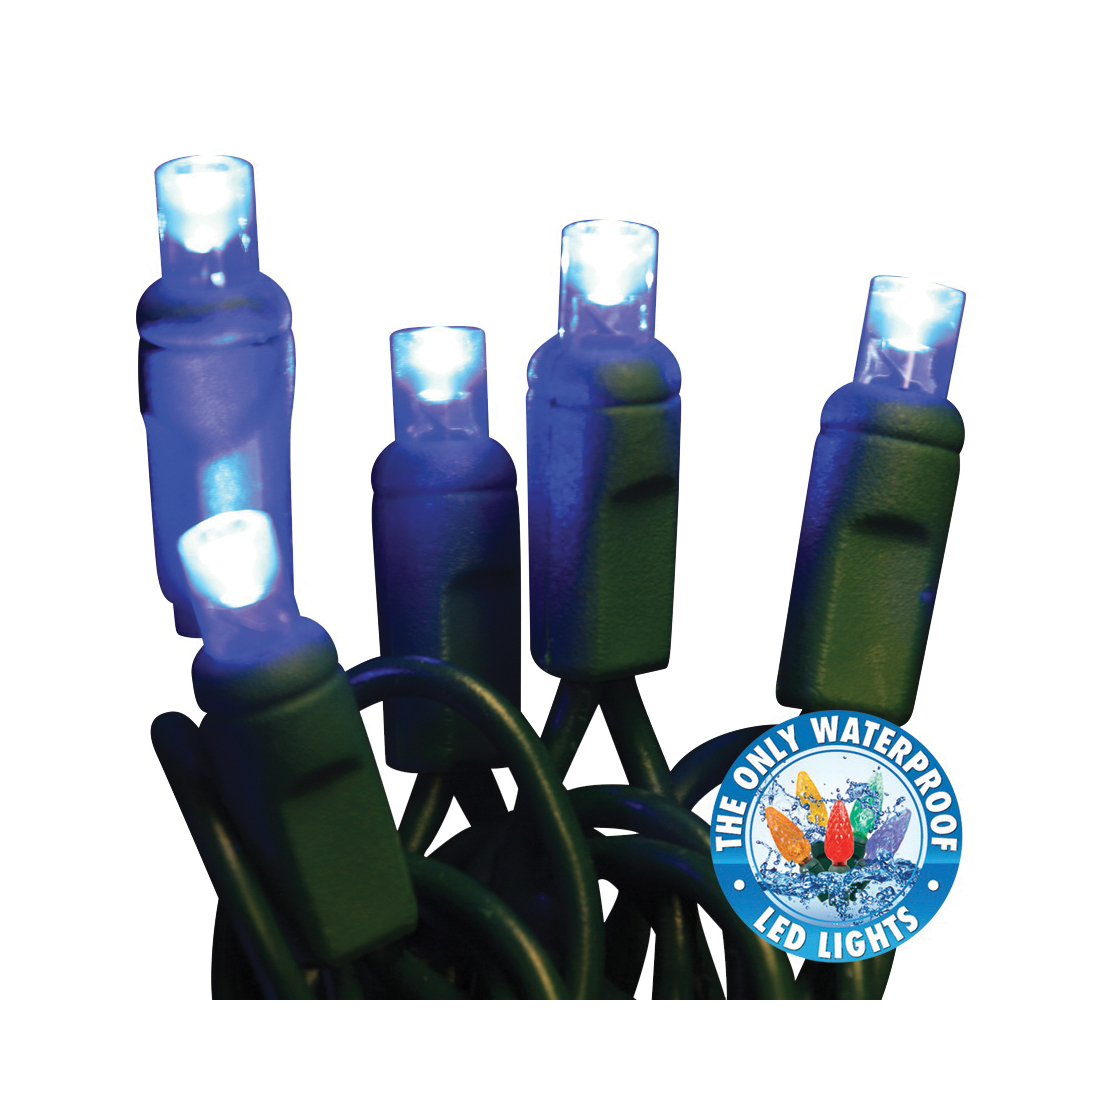 Picture of Holiday Bright Lights LEDBX-WA50-BL6 Light Set, 50 -Lamp, LED Lamp, Blue Lamp, 50000 hr Average Life, 26 ft L